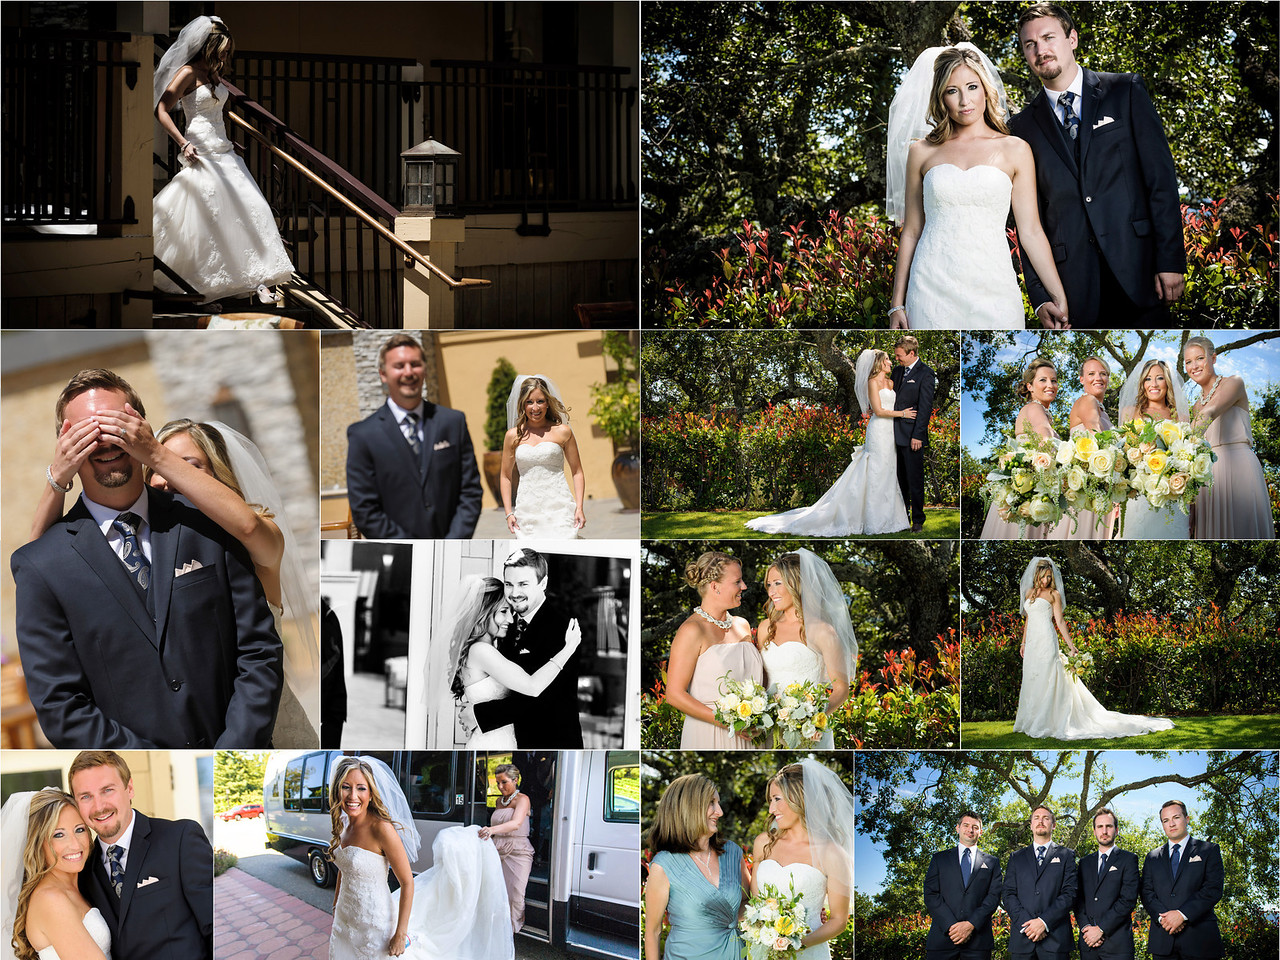 Erica_and_Justin_Byington_Winery_Los_Gatos_Wedding_Photography_4x6_Photo_Board_03